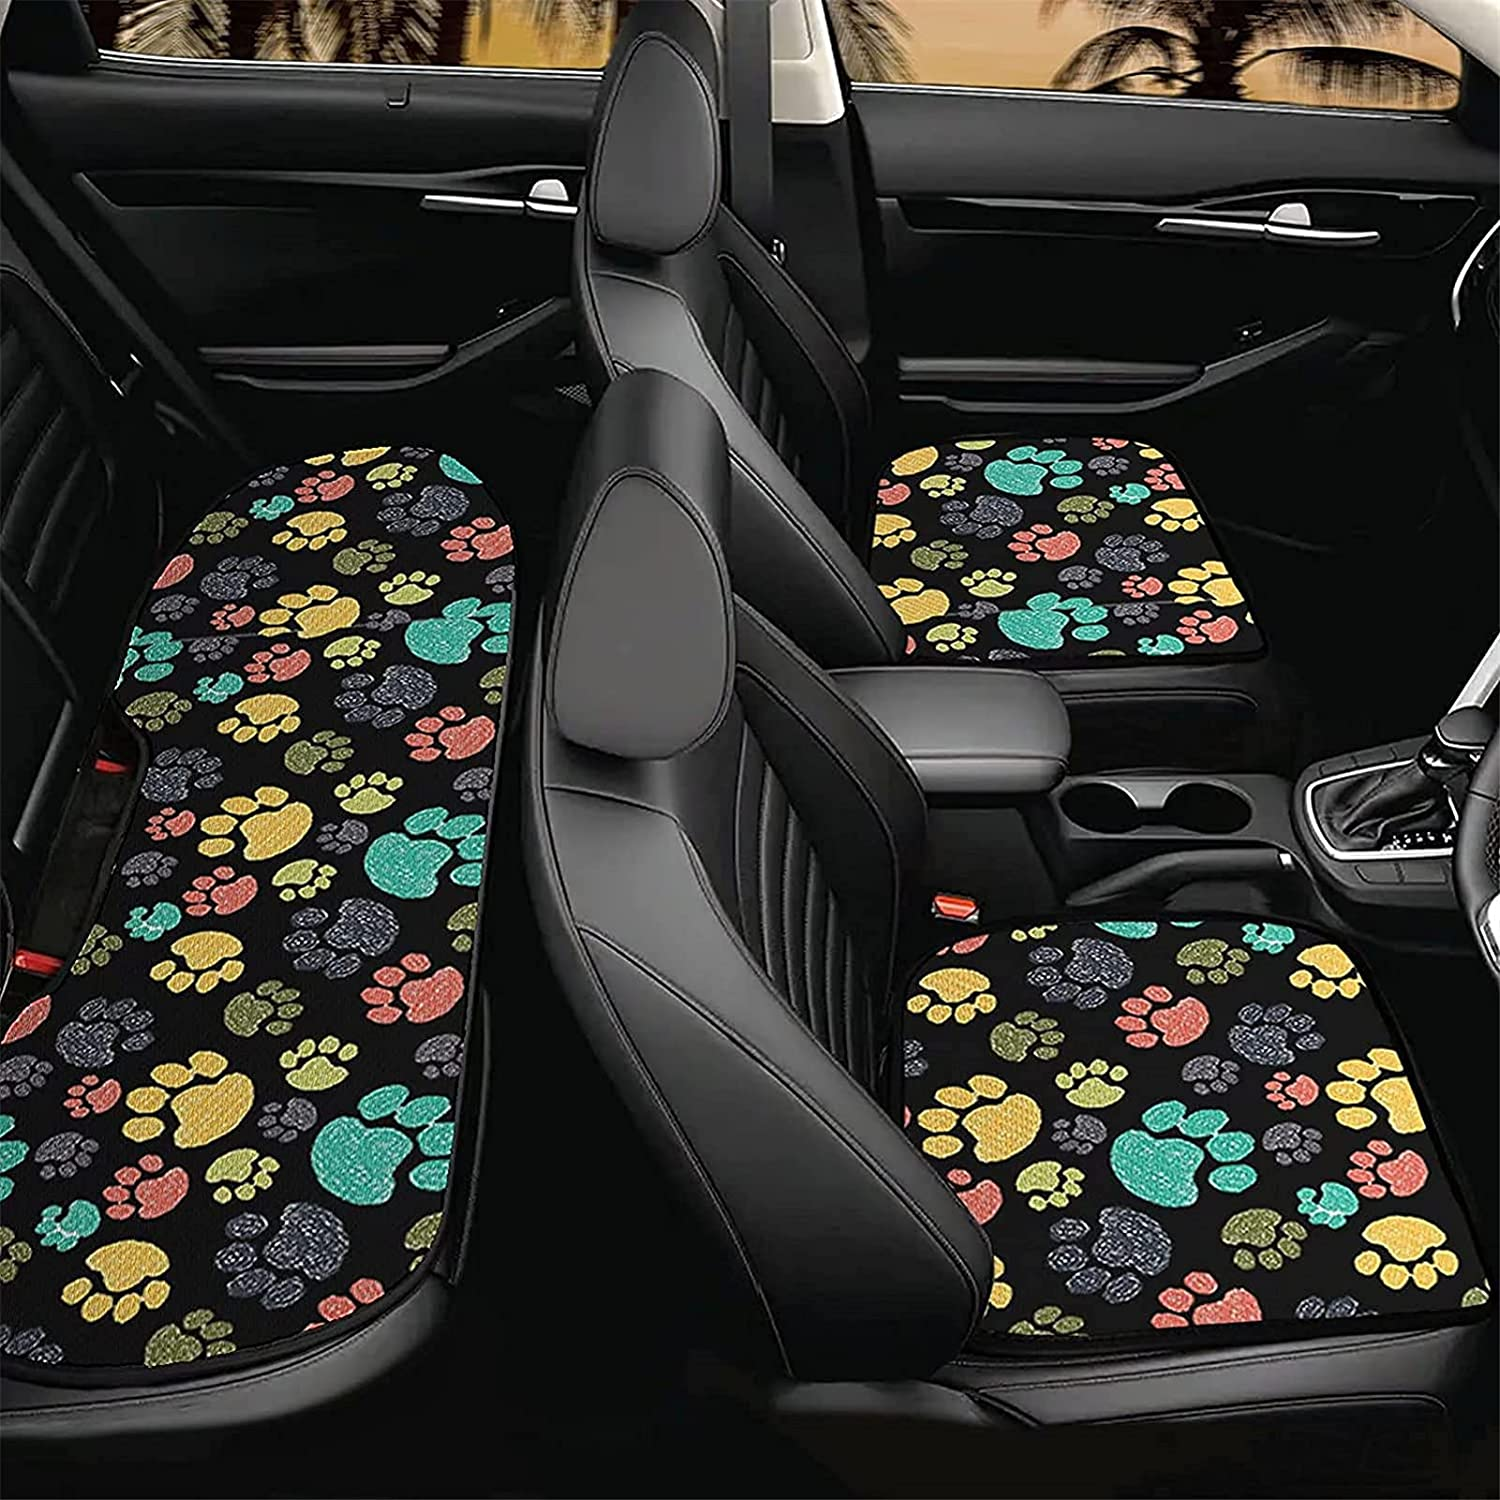 Poceacles Pet Paws Print Rare Car Front 2 Fro Auto Cushion Save money Seat Back